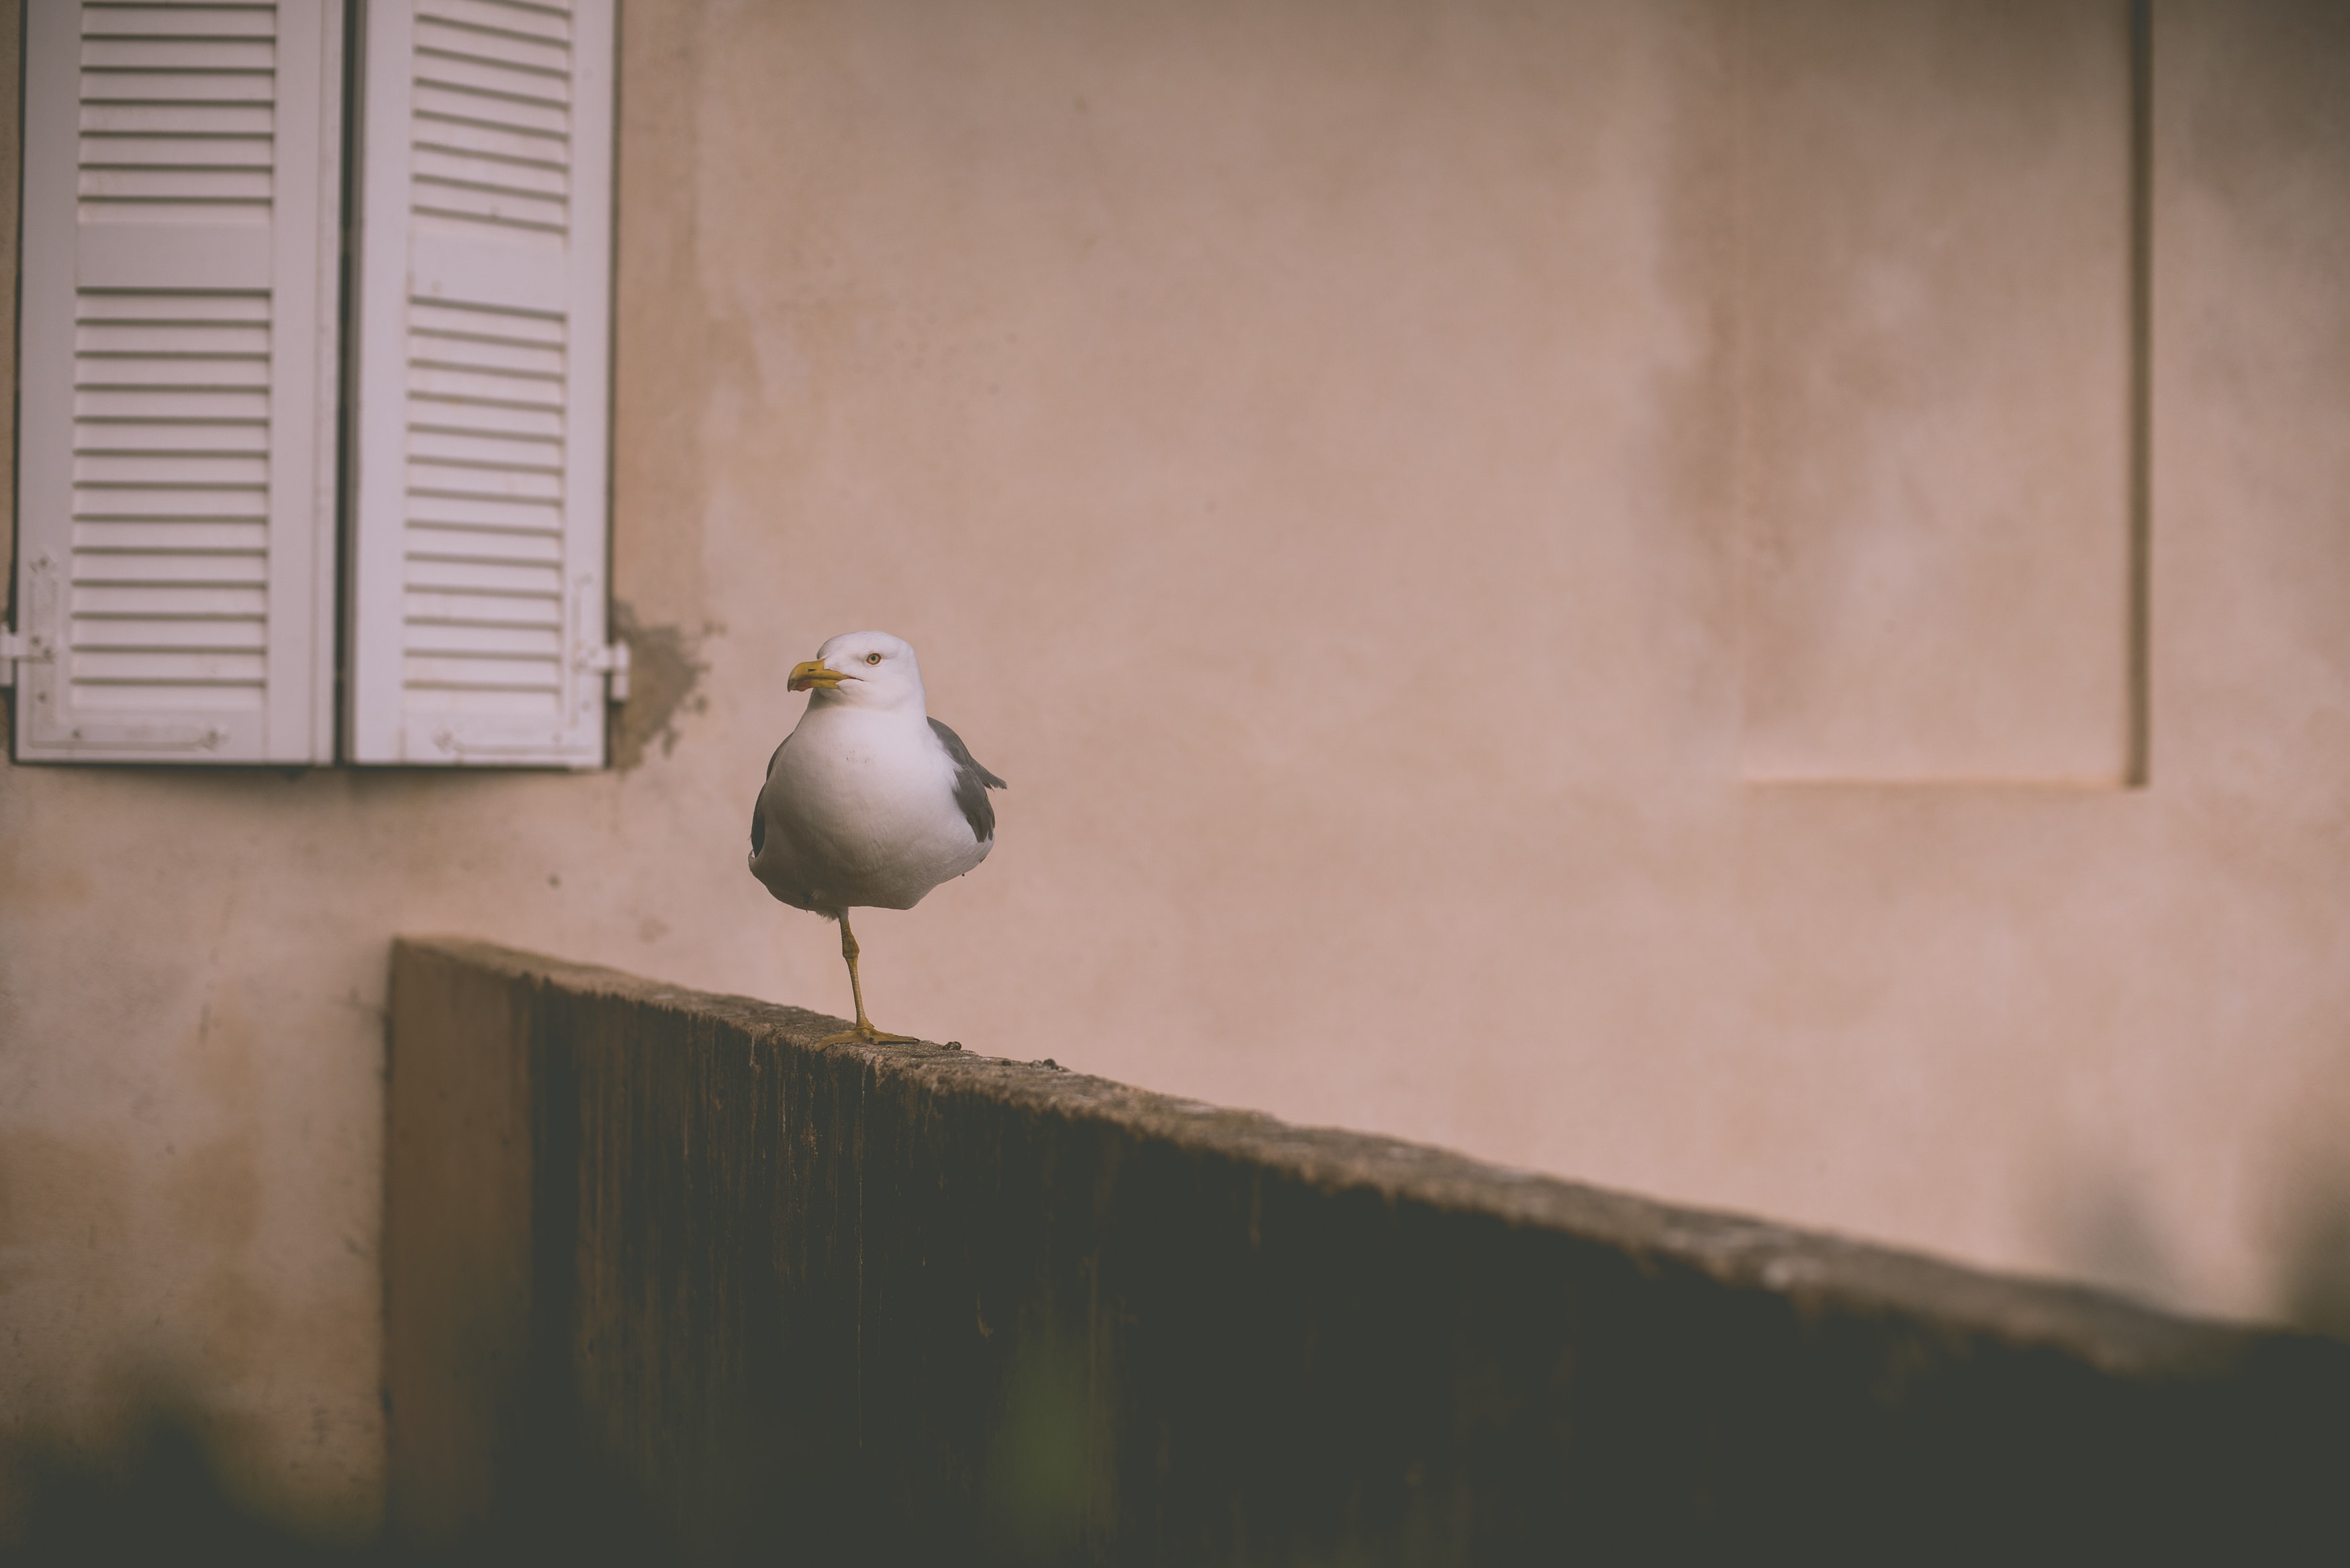 white bird perching on brown wooden fence near window